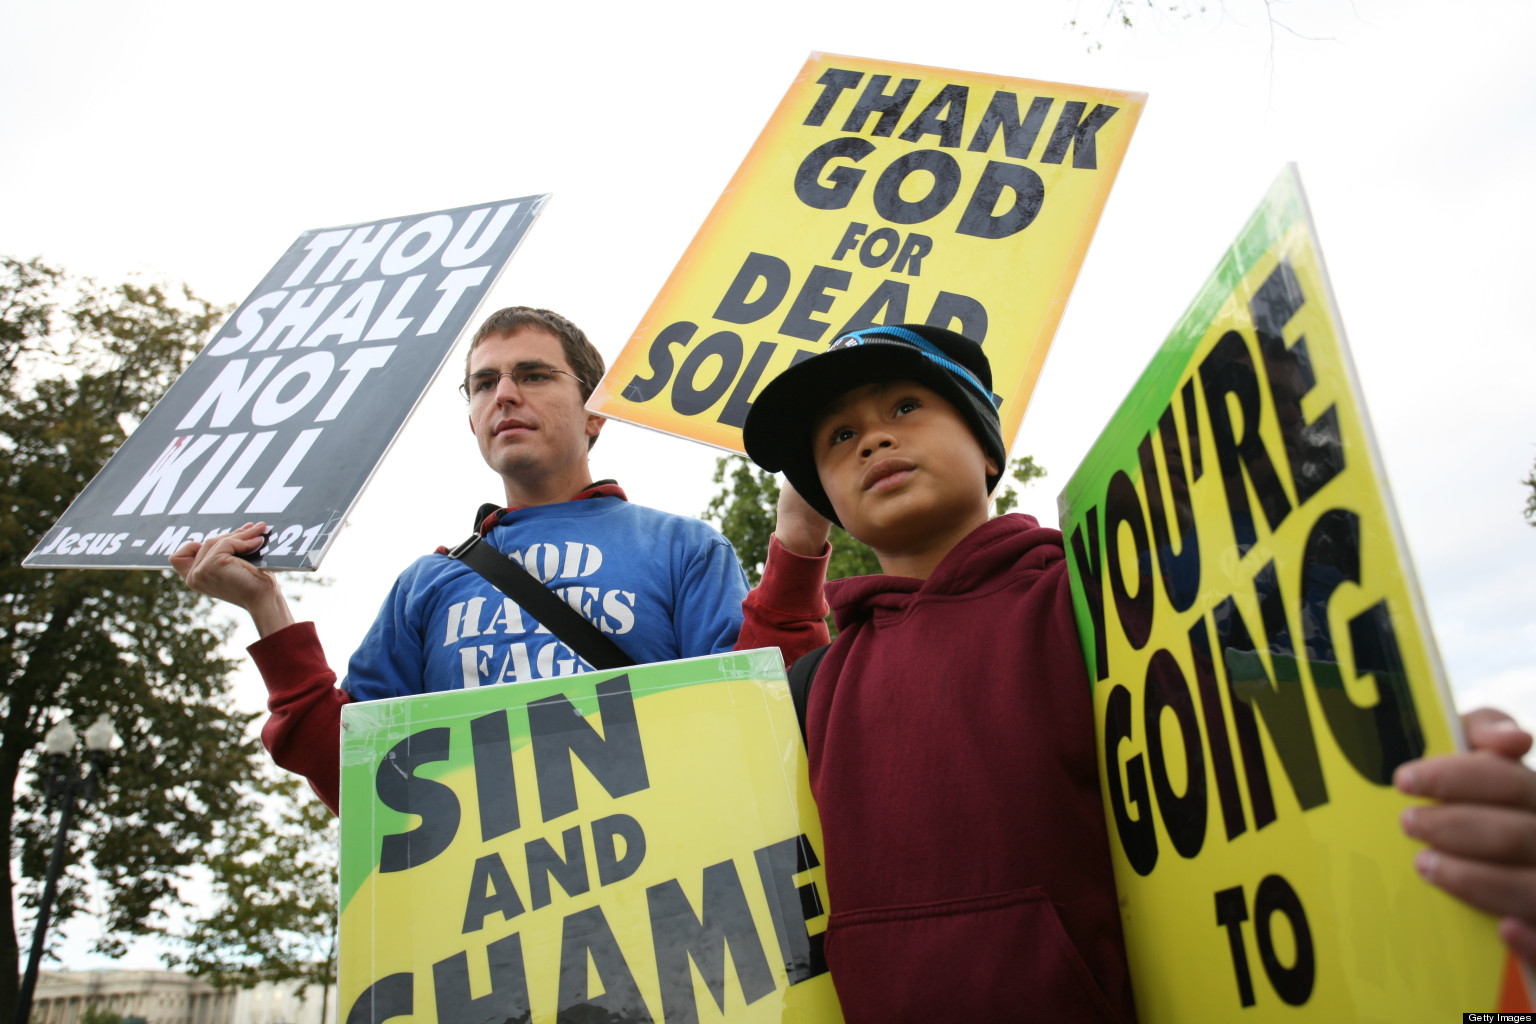 westboro baptist Westboro baptist church page, topeka, kansas 216 likes we stand for the truth of the bible and refuse to sugarcoat sin for anyone.